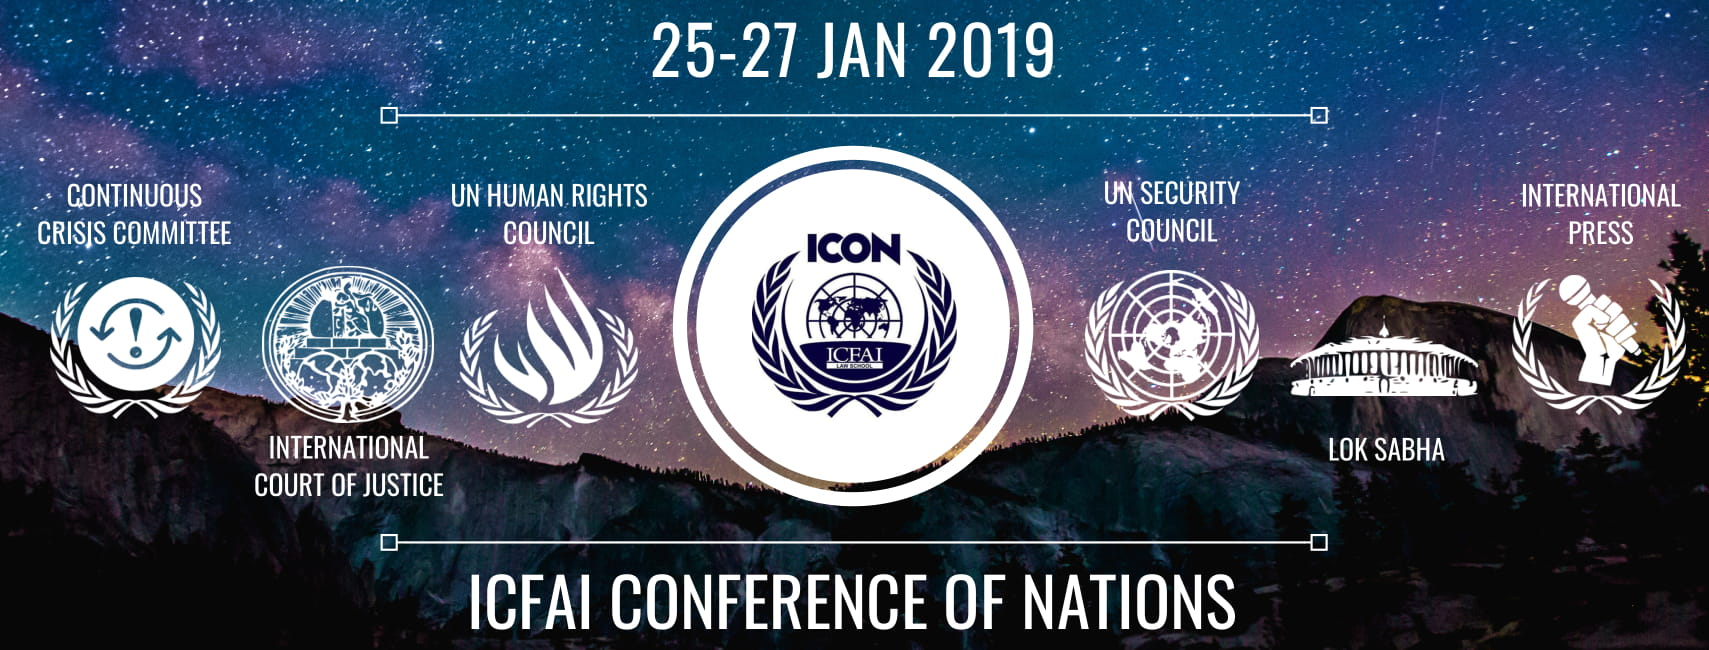 ICFAI Conference Of Nations 2019